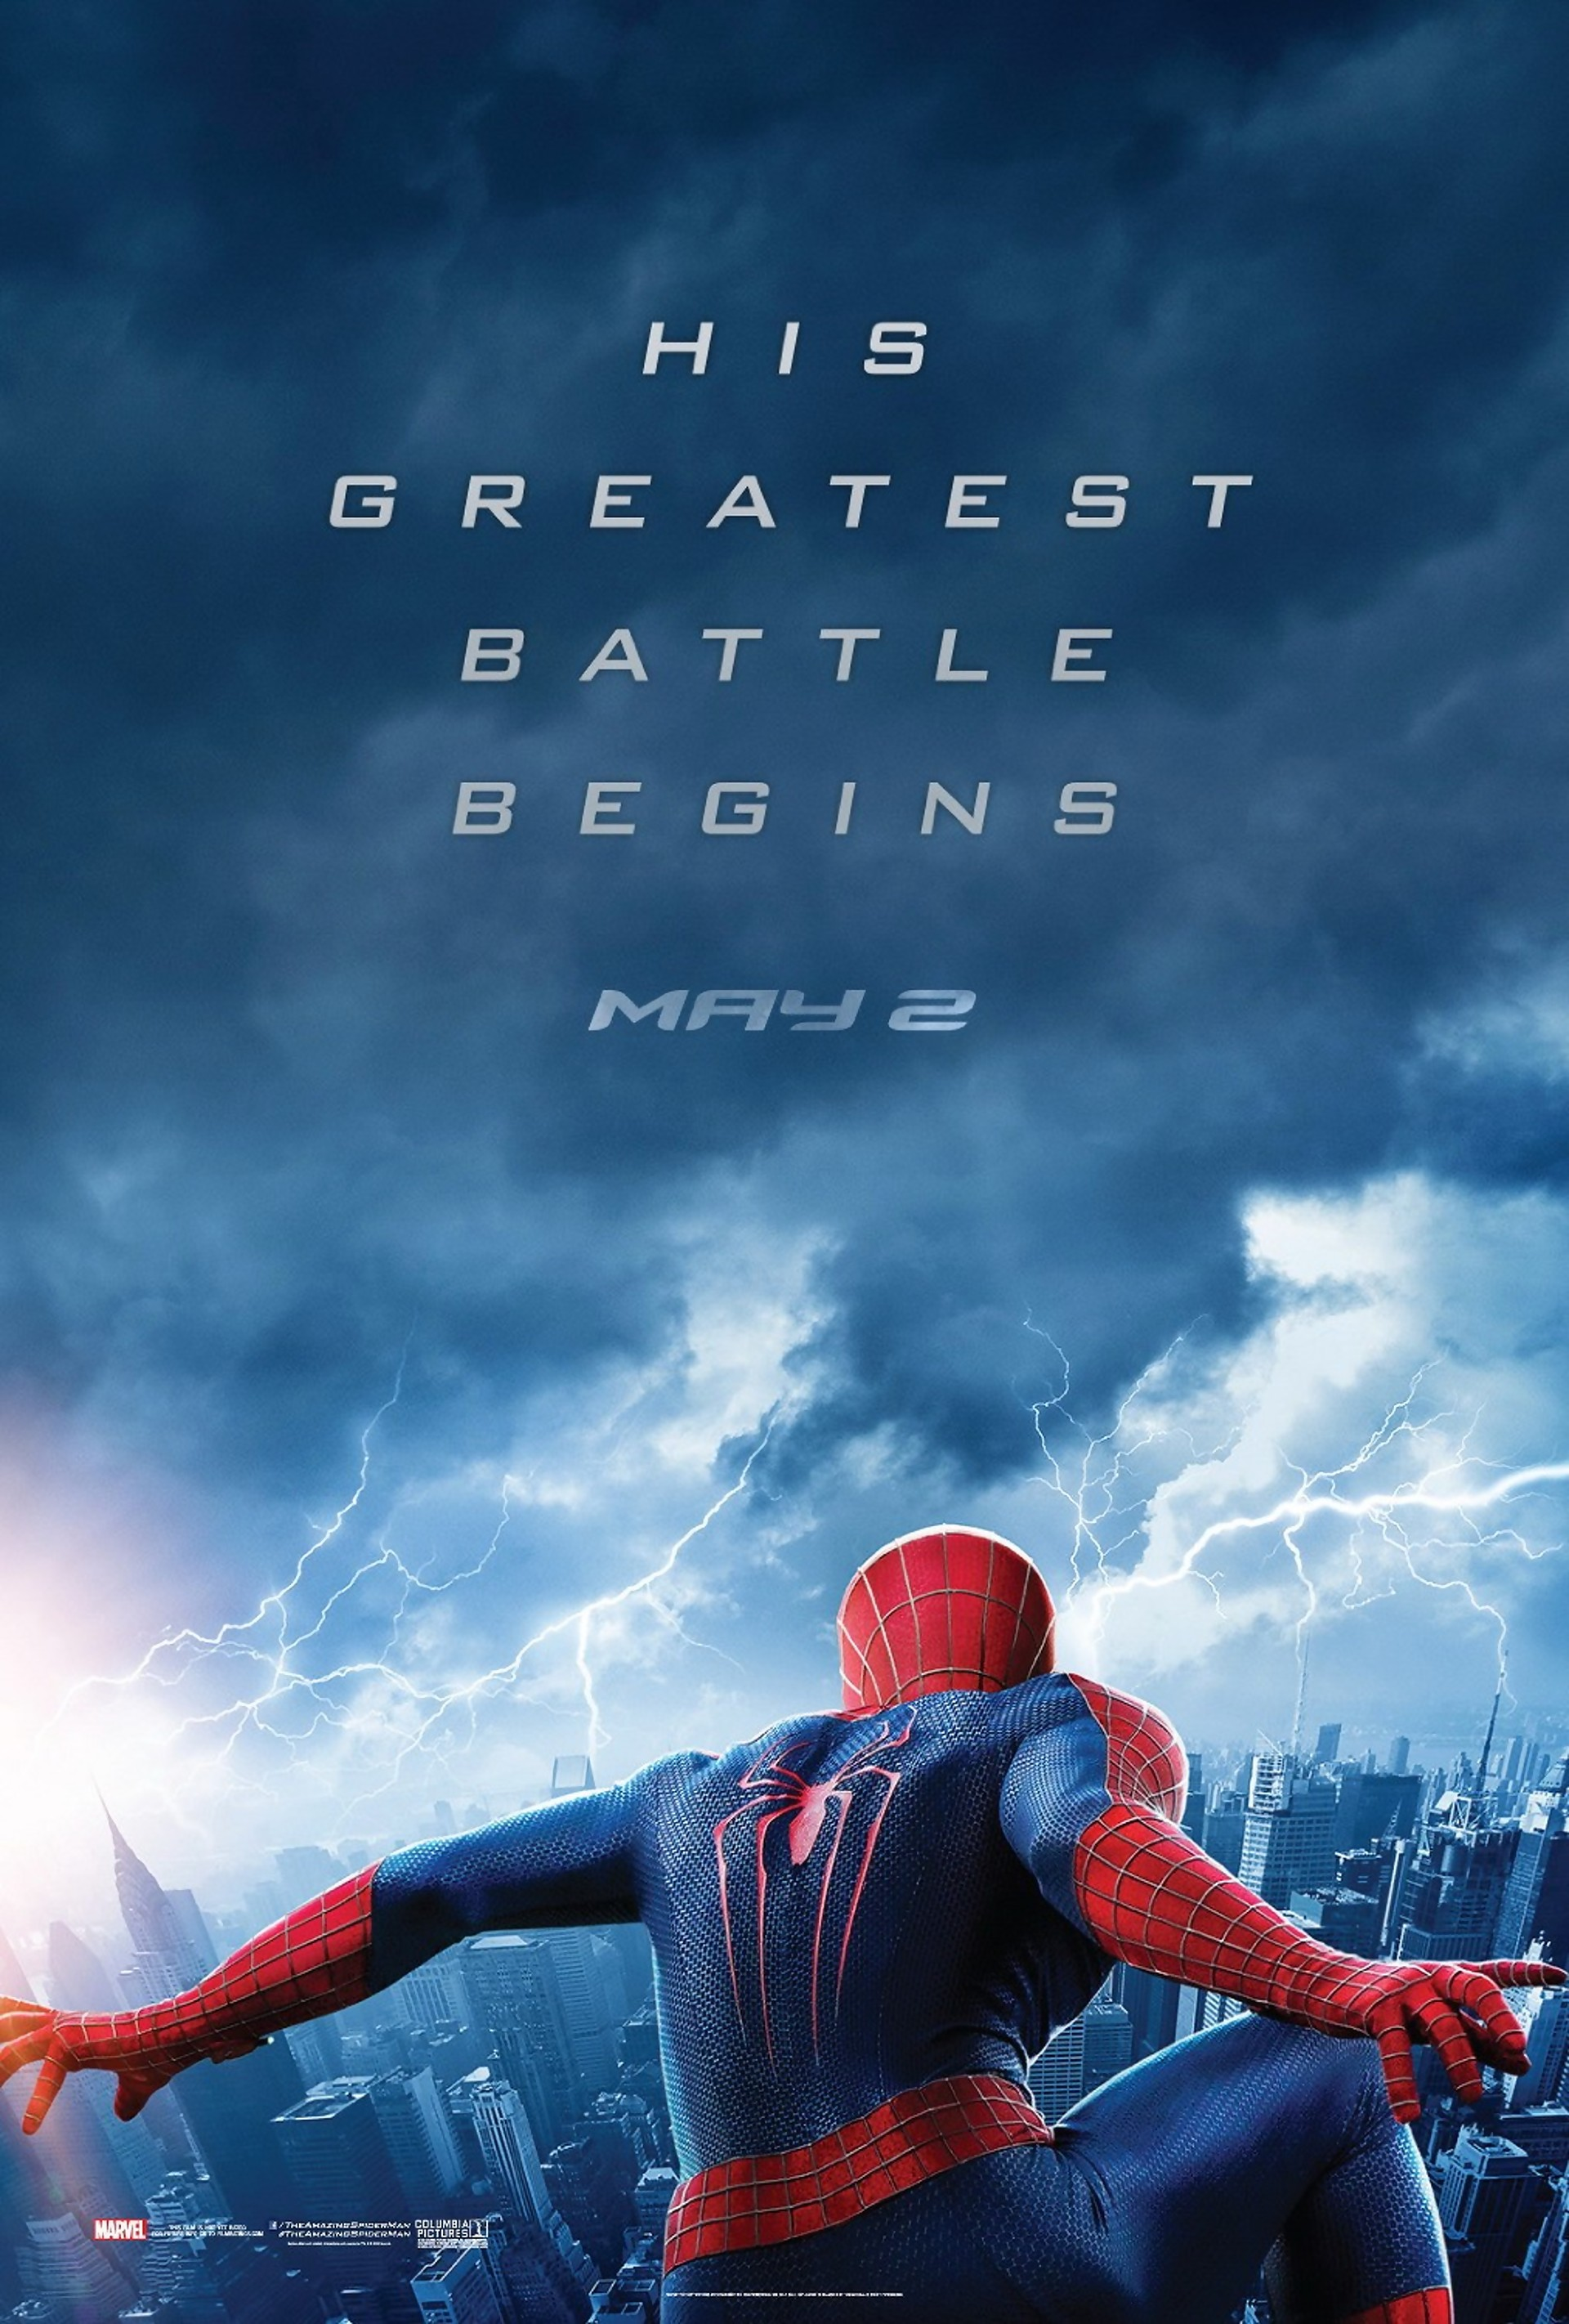 http://img.filmsactu.net/datas/films/t/h/the-amazing-spider-man-le-destin-d-un-heros/xl/the-amazing-spider-man-le-destin-d-un-heros-affiche-52b18b1d370dd.jpg